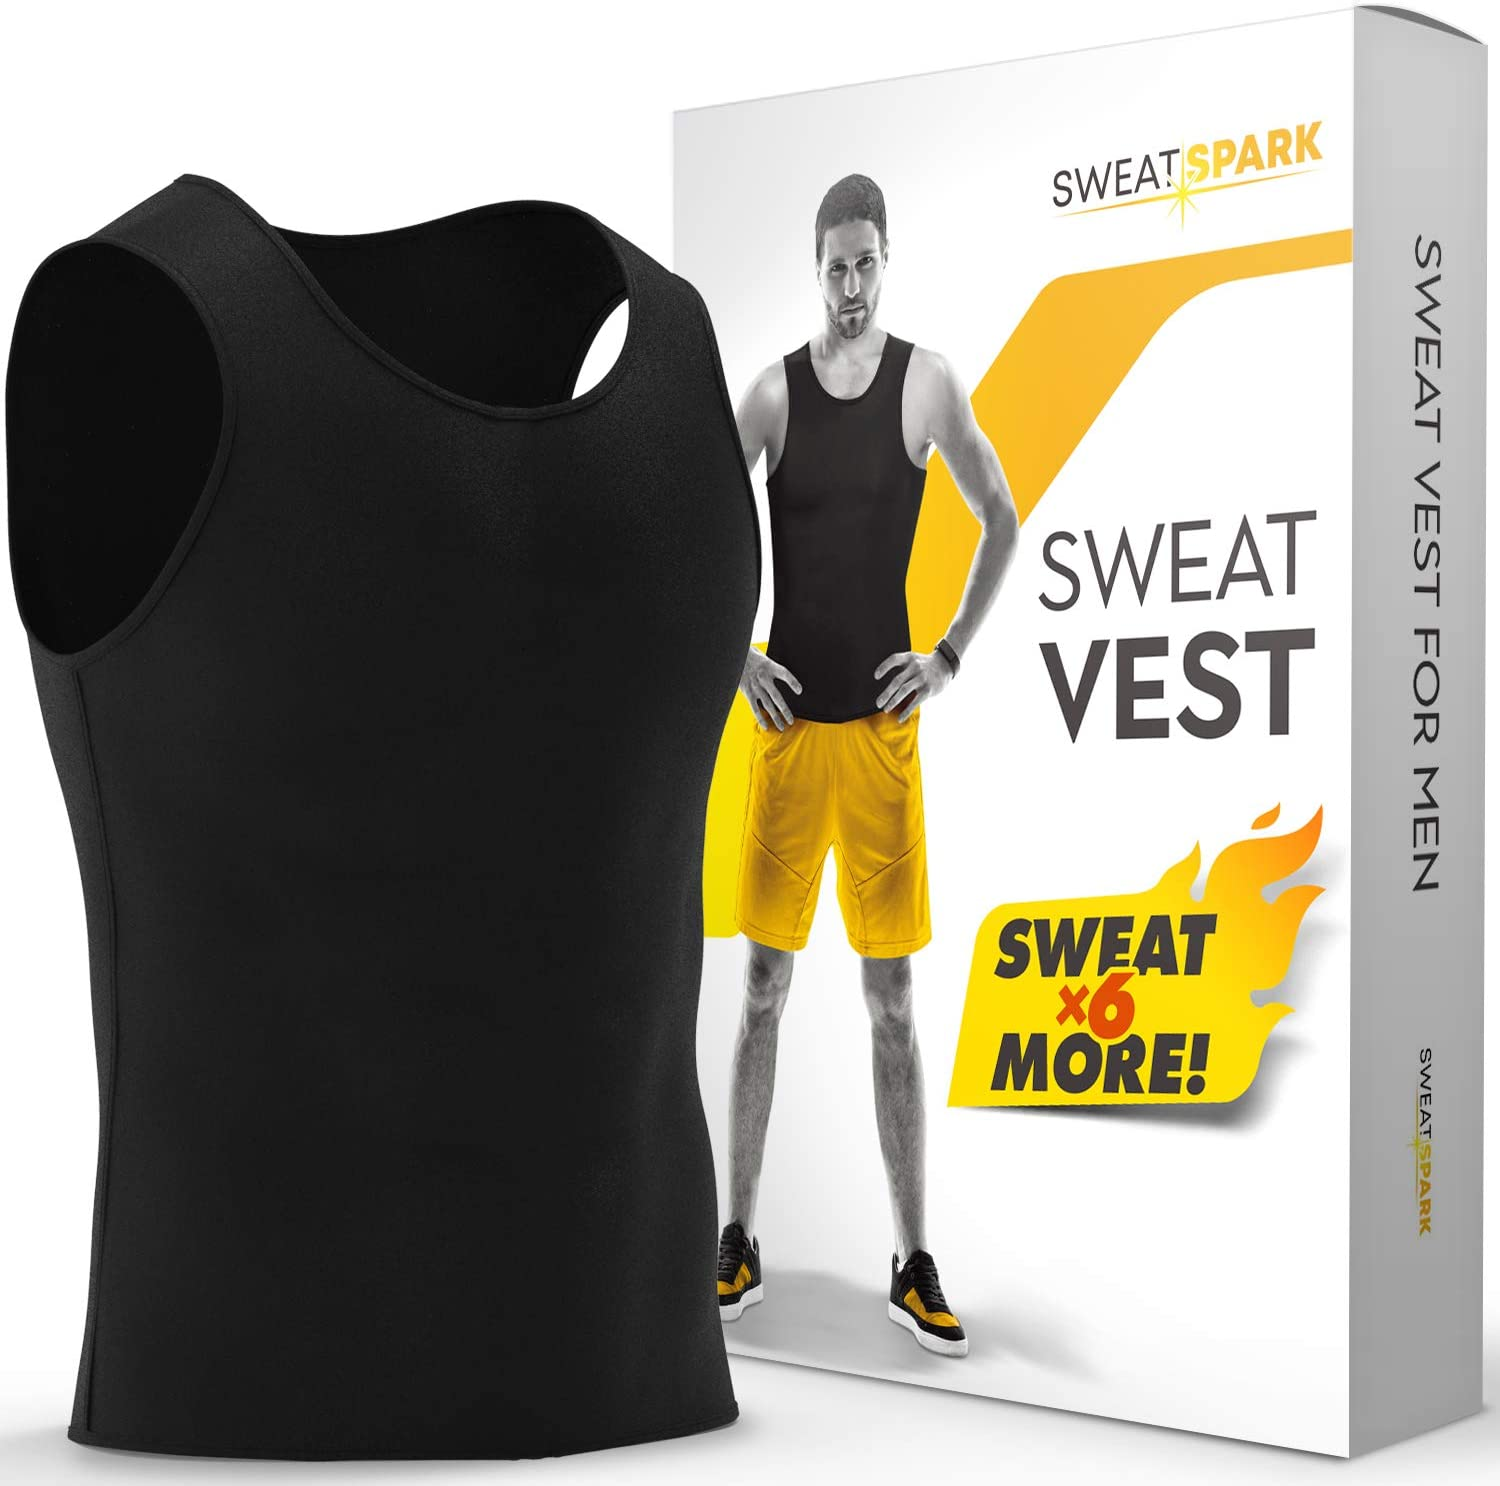 Increase Your Workout Motivation XS-10XL Sweat Vest for Men - - Advanced Weightless Neoprene Sauna Shirt Designed in The USA